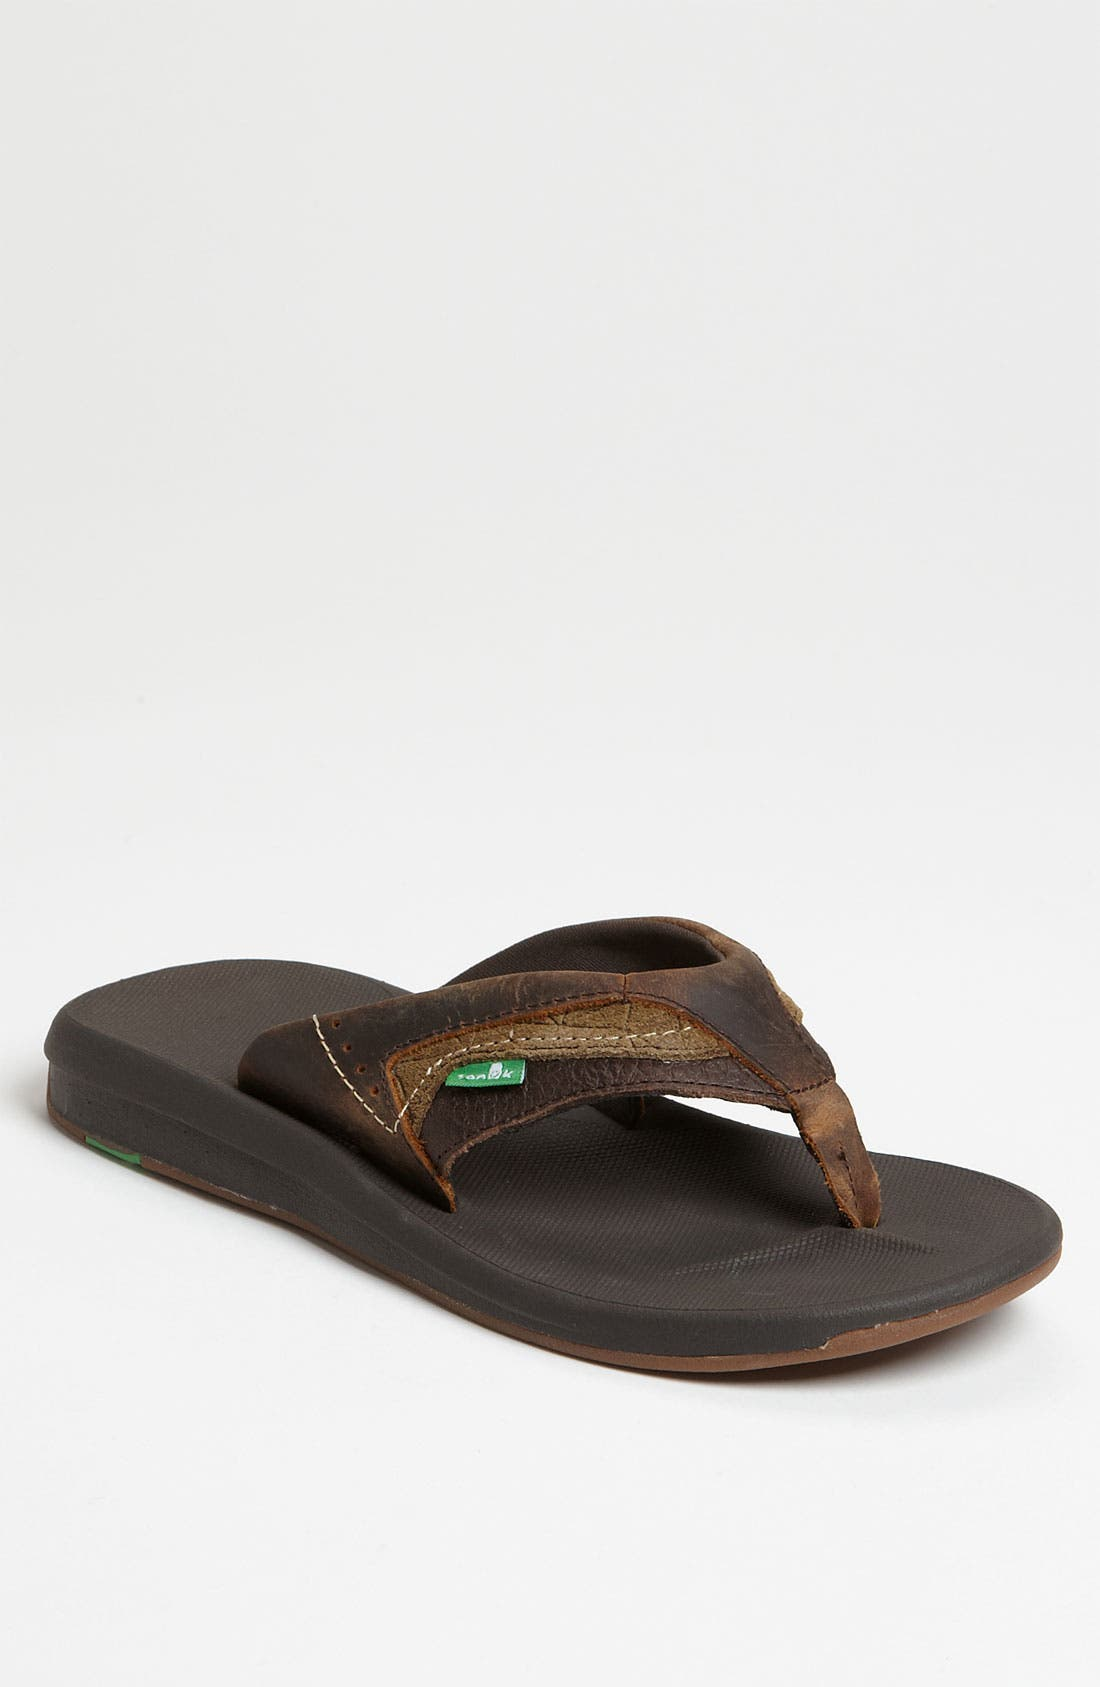 Main Image - Sanuk 'Switch' Leather Flip Flop